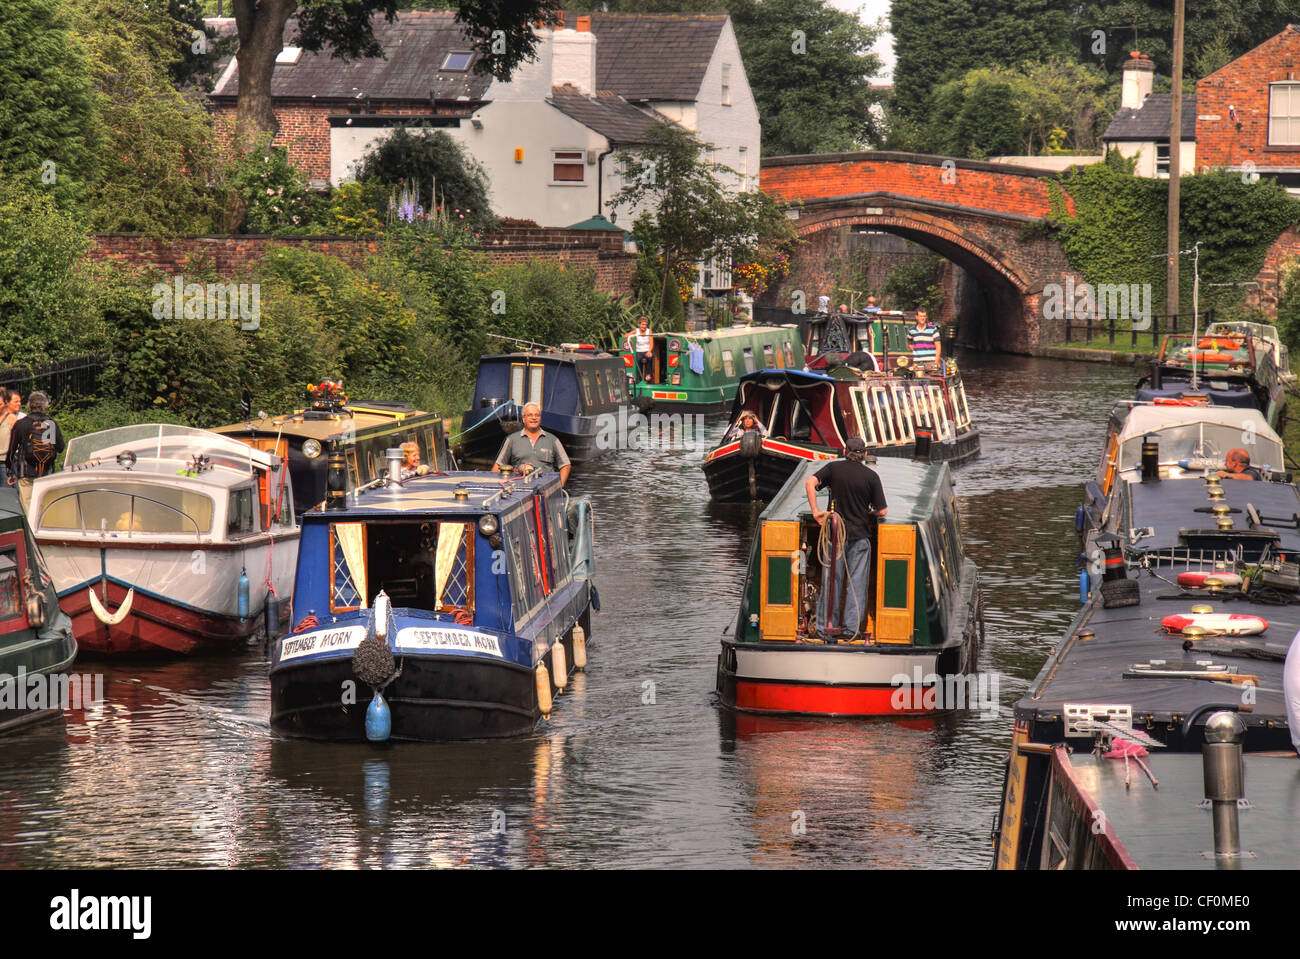 English Canal Boats Rush hour on The Bridgewater Canal, Lymm, Cheshire, England, UK - Stock Image